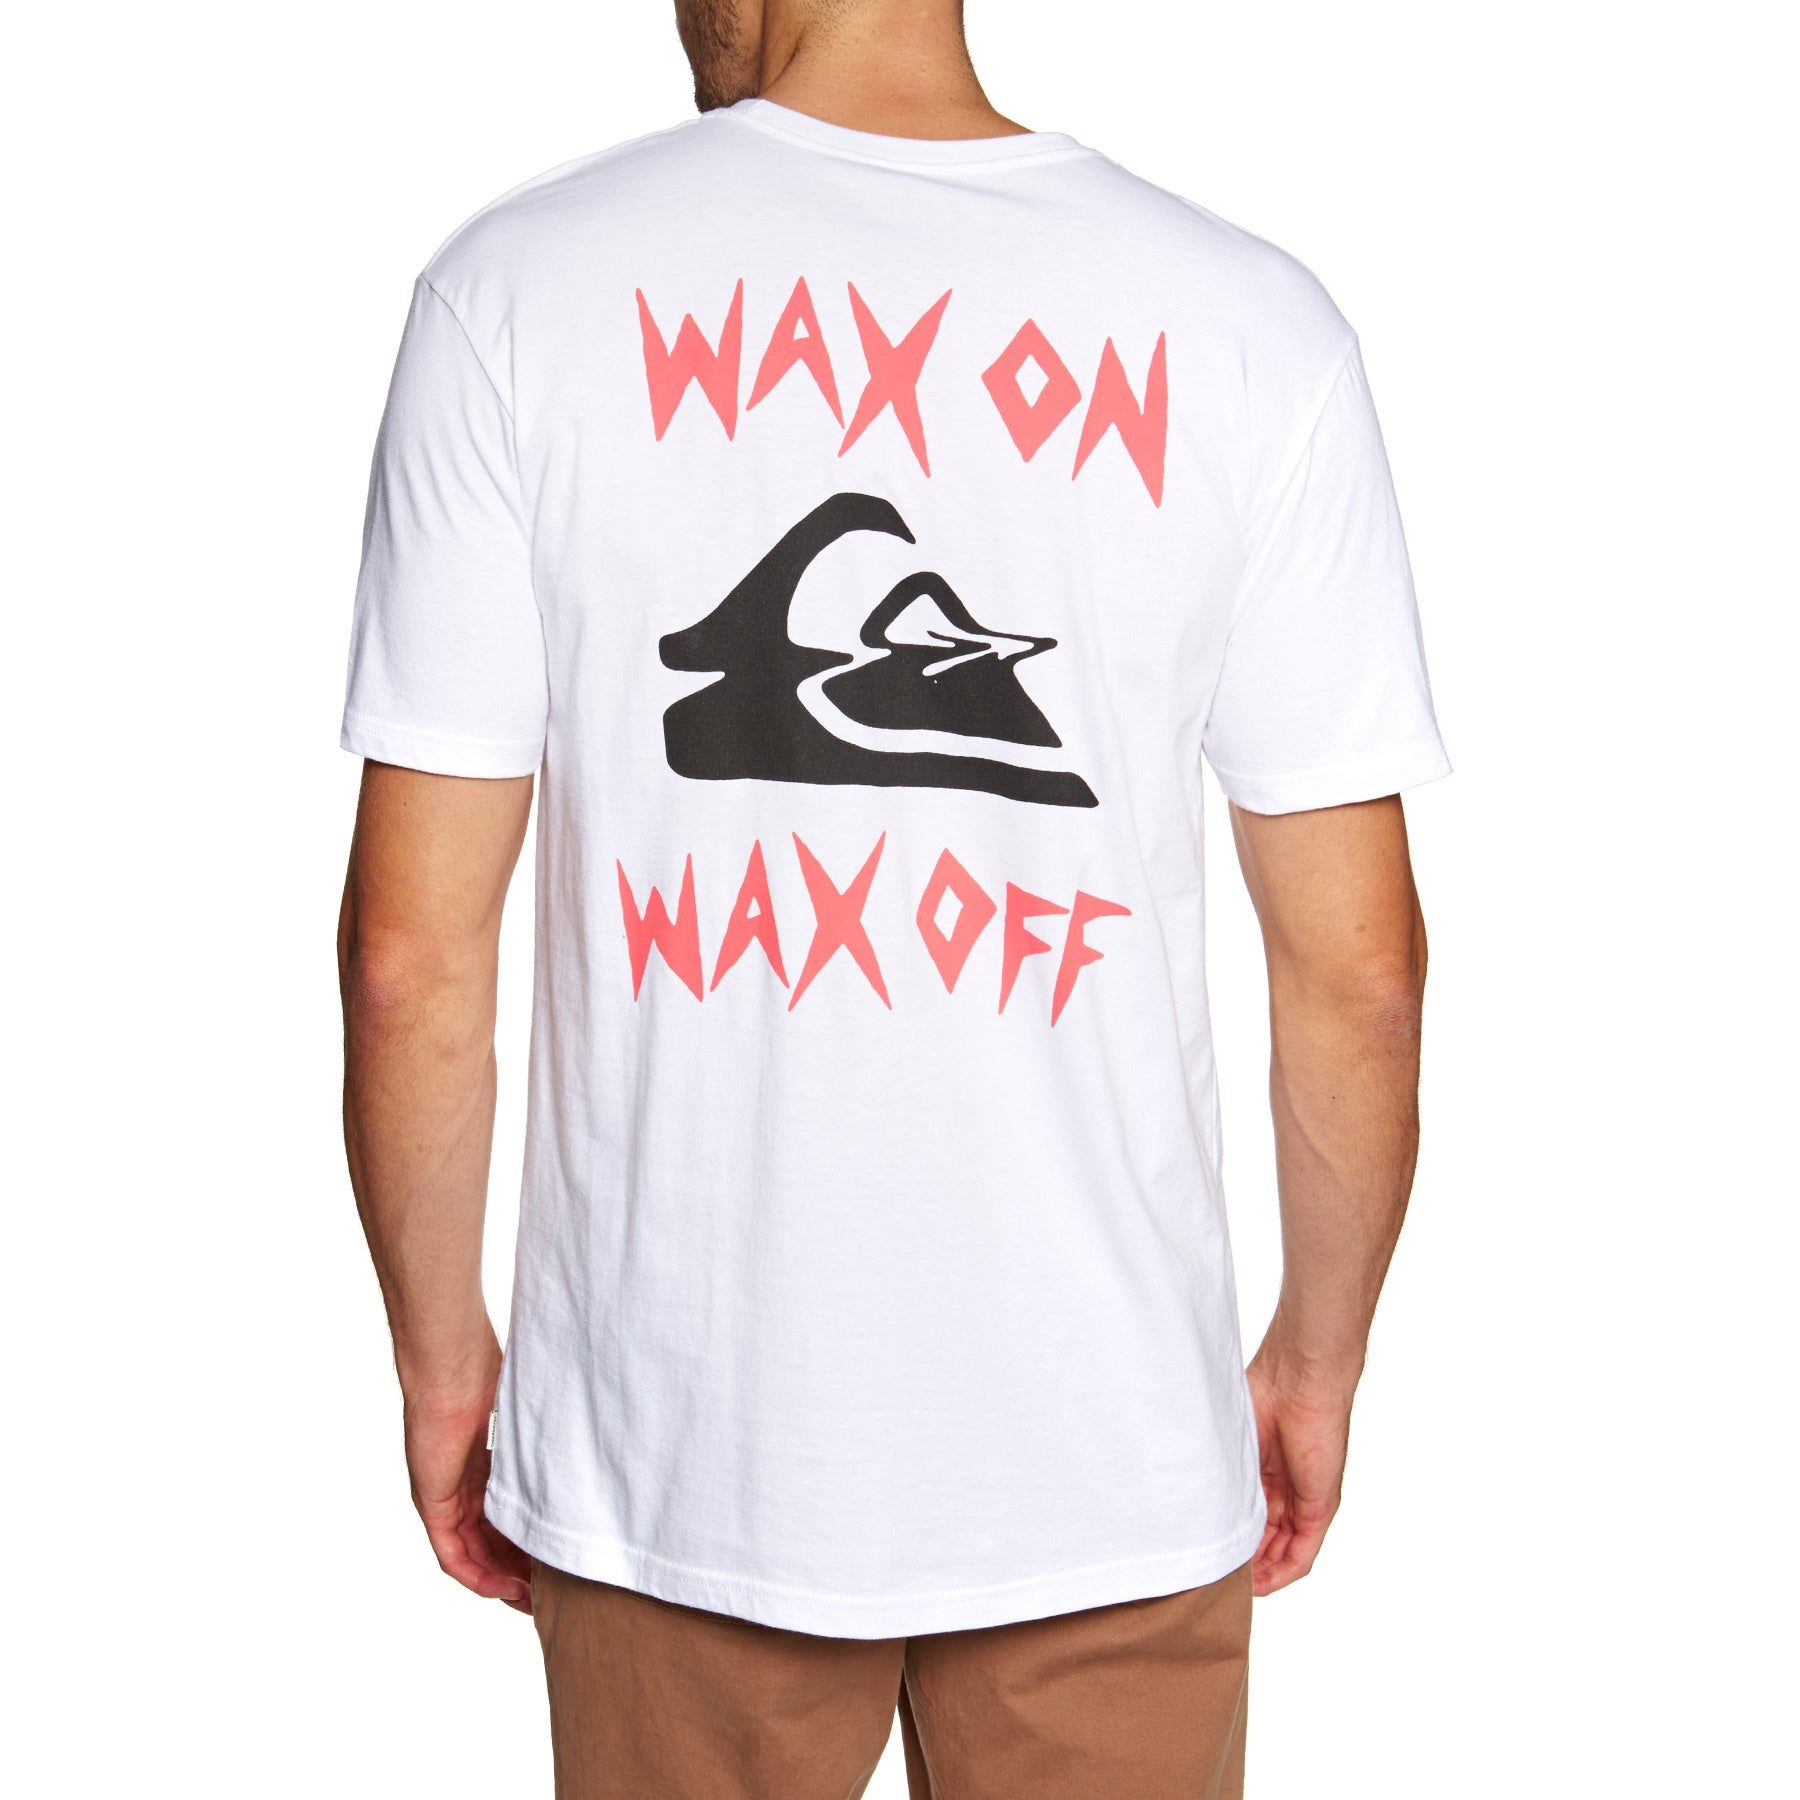 a68ee7e0200e Quiksilver Wax Job Short Sleeve T-Shirt available from Surfdome